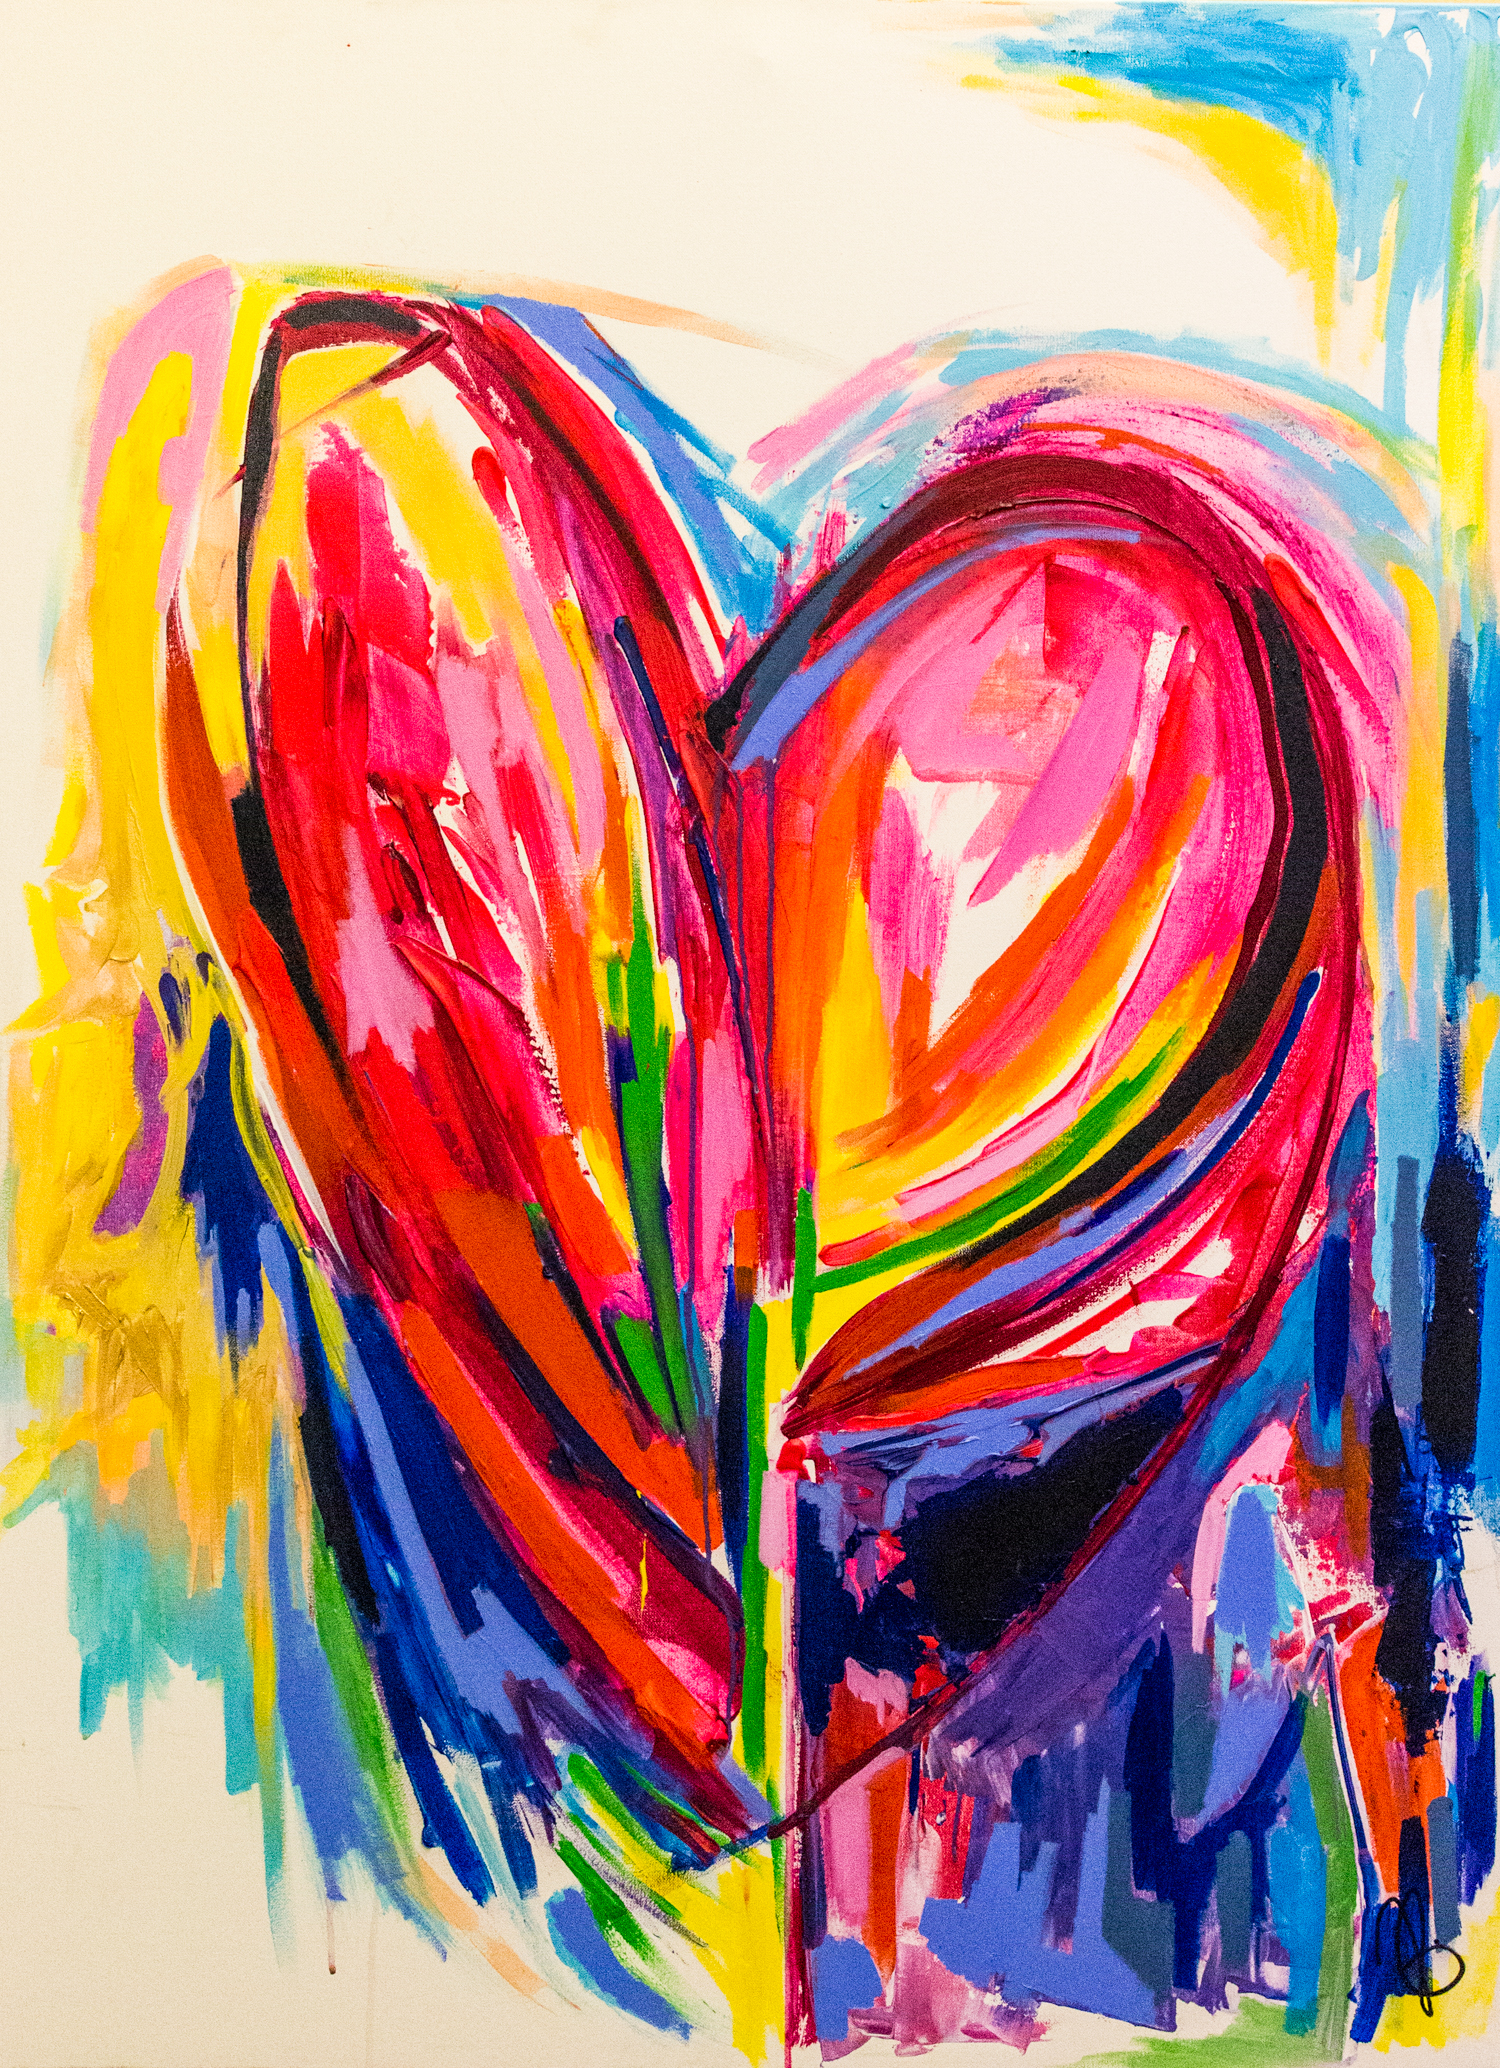 One Heart /  48 x 36 / Acrylic / 2016 /  SOLD